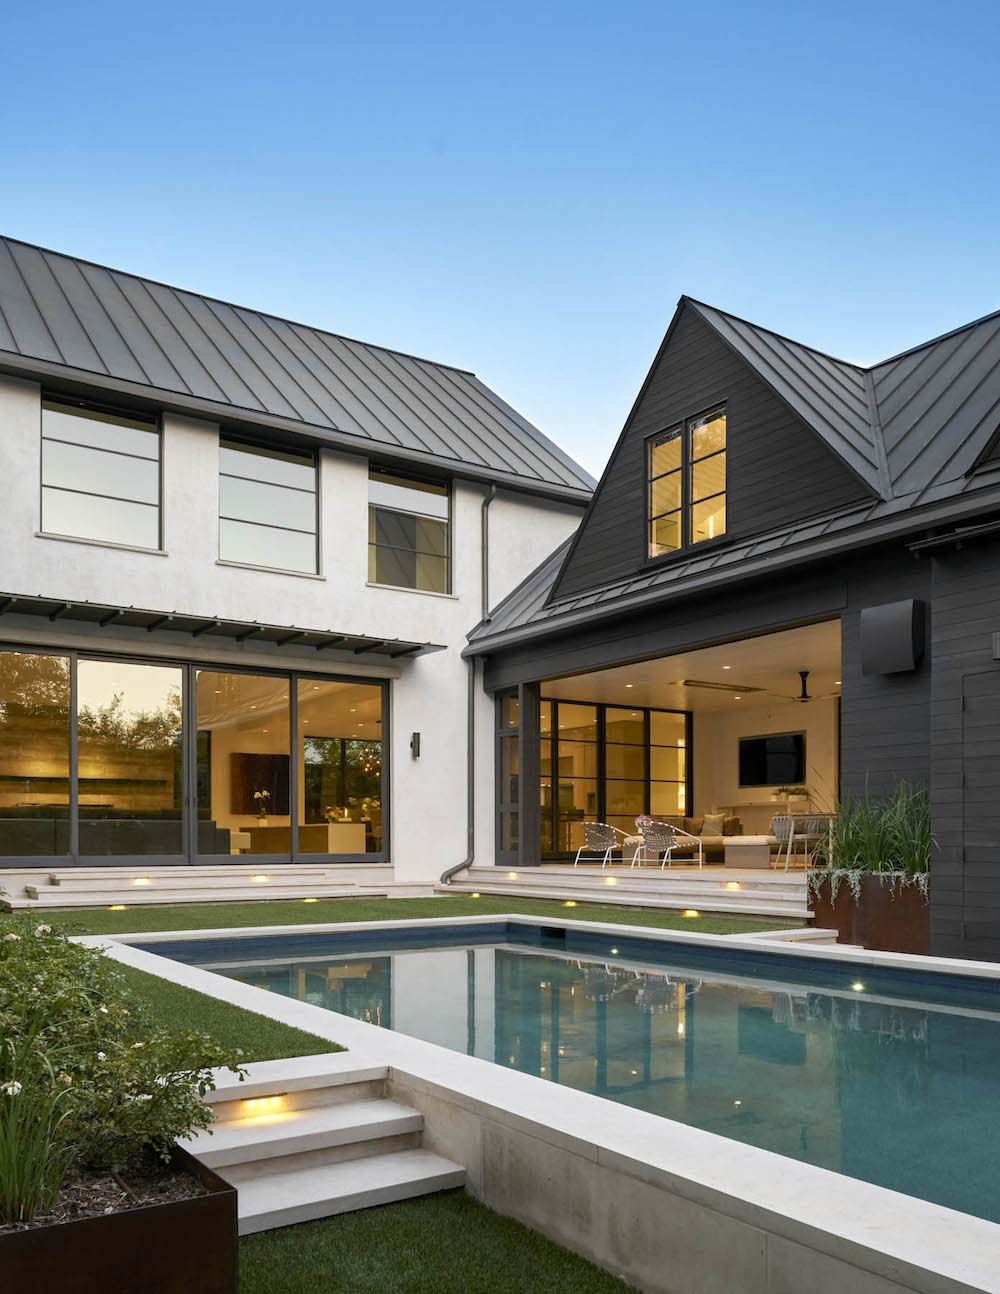 Outstanding Contemporary Home In Texas With Inspiring Design Details Modern House Design House Design Contemporary House